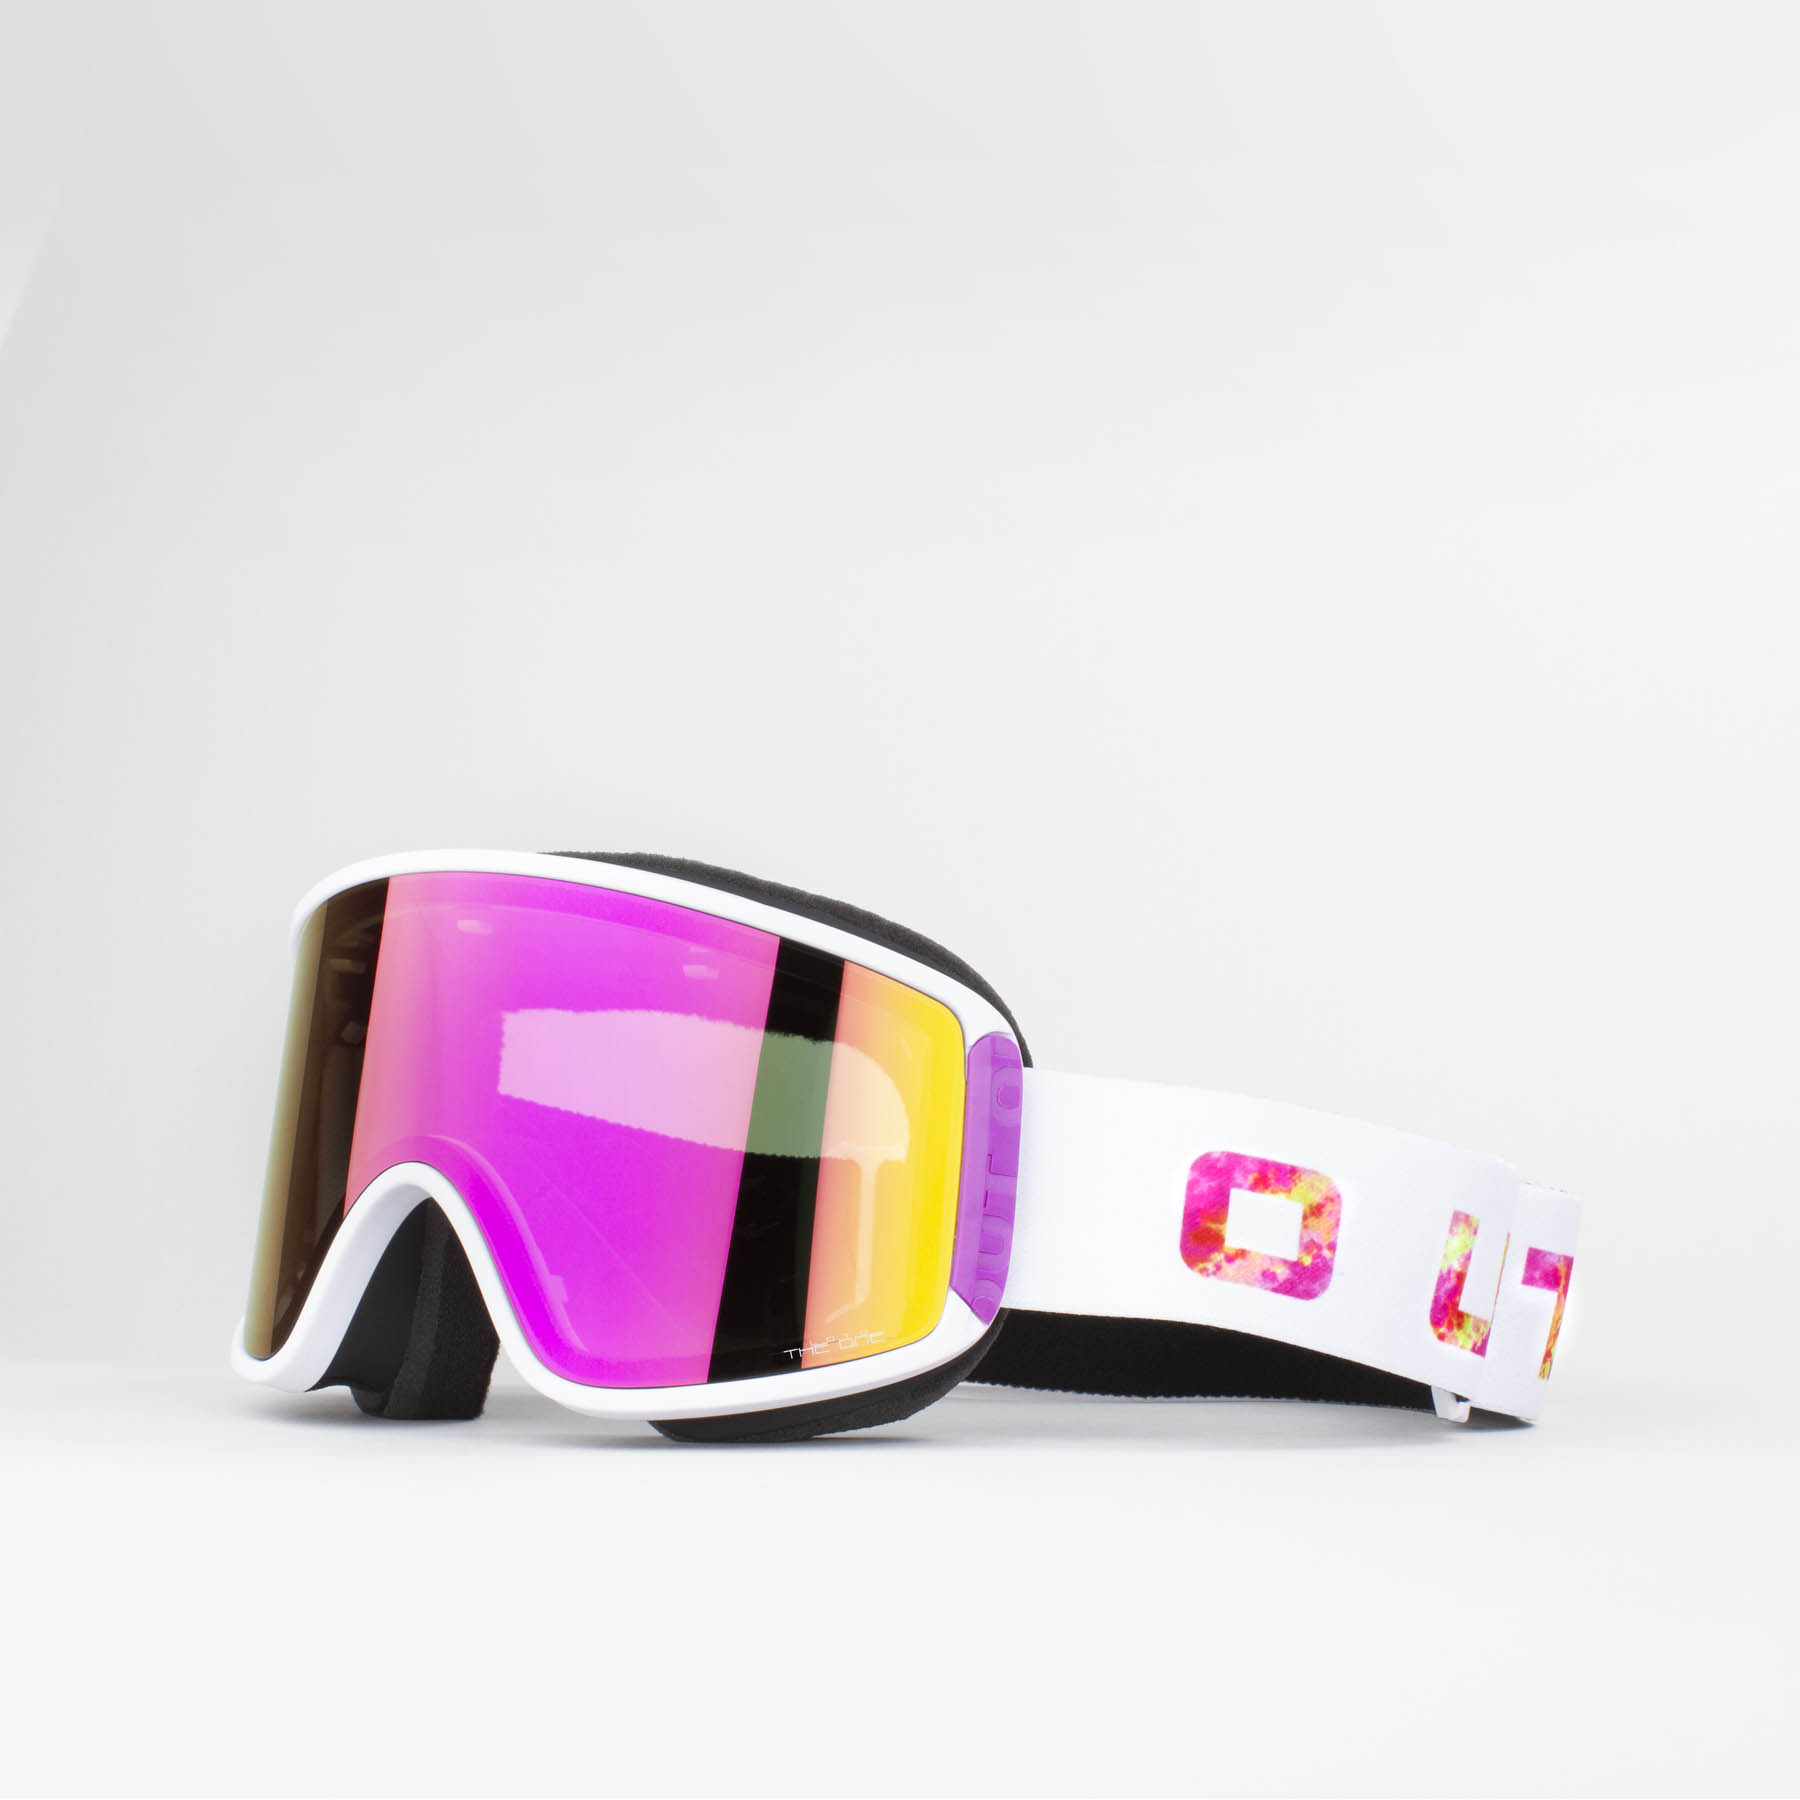 Shift Sprinkle The One Loto goggle